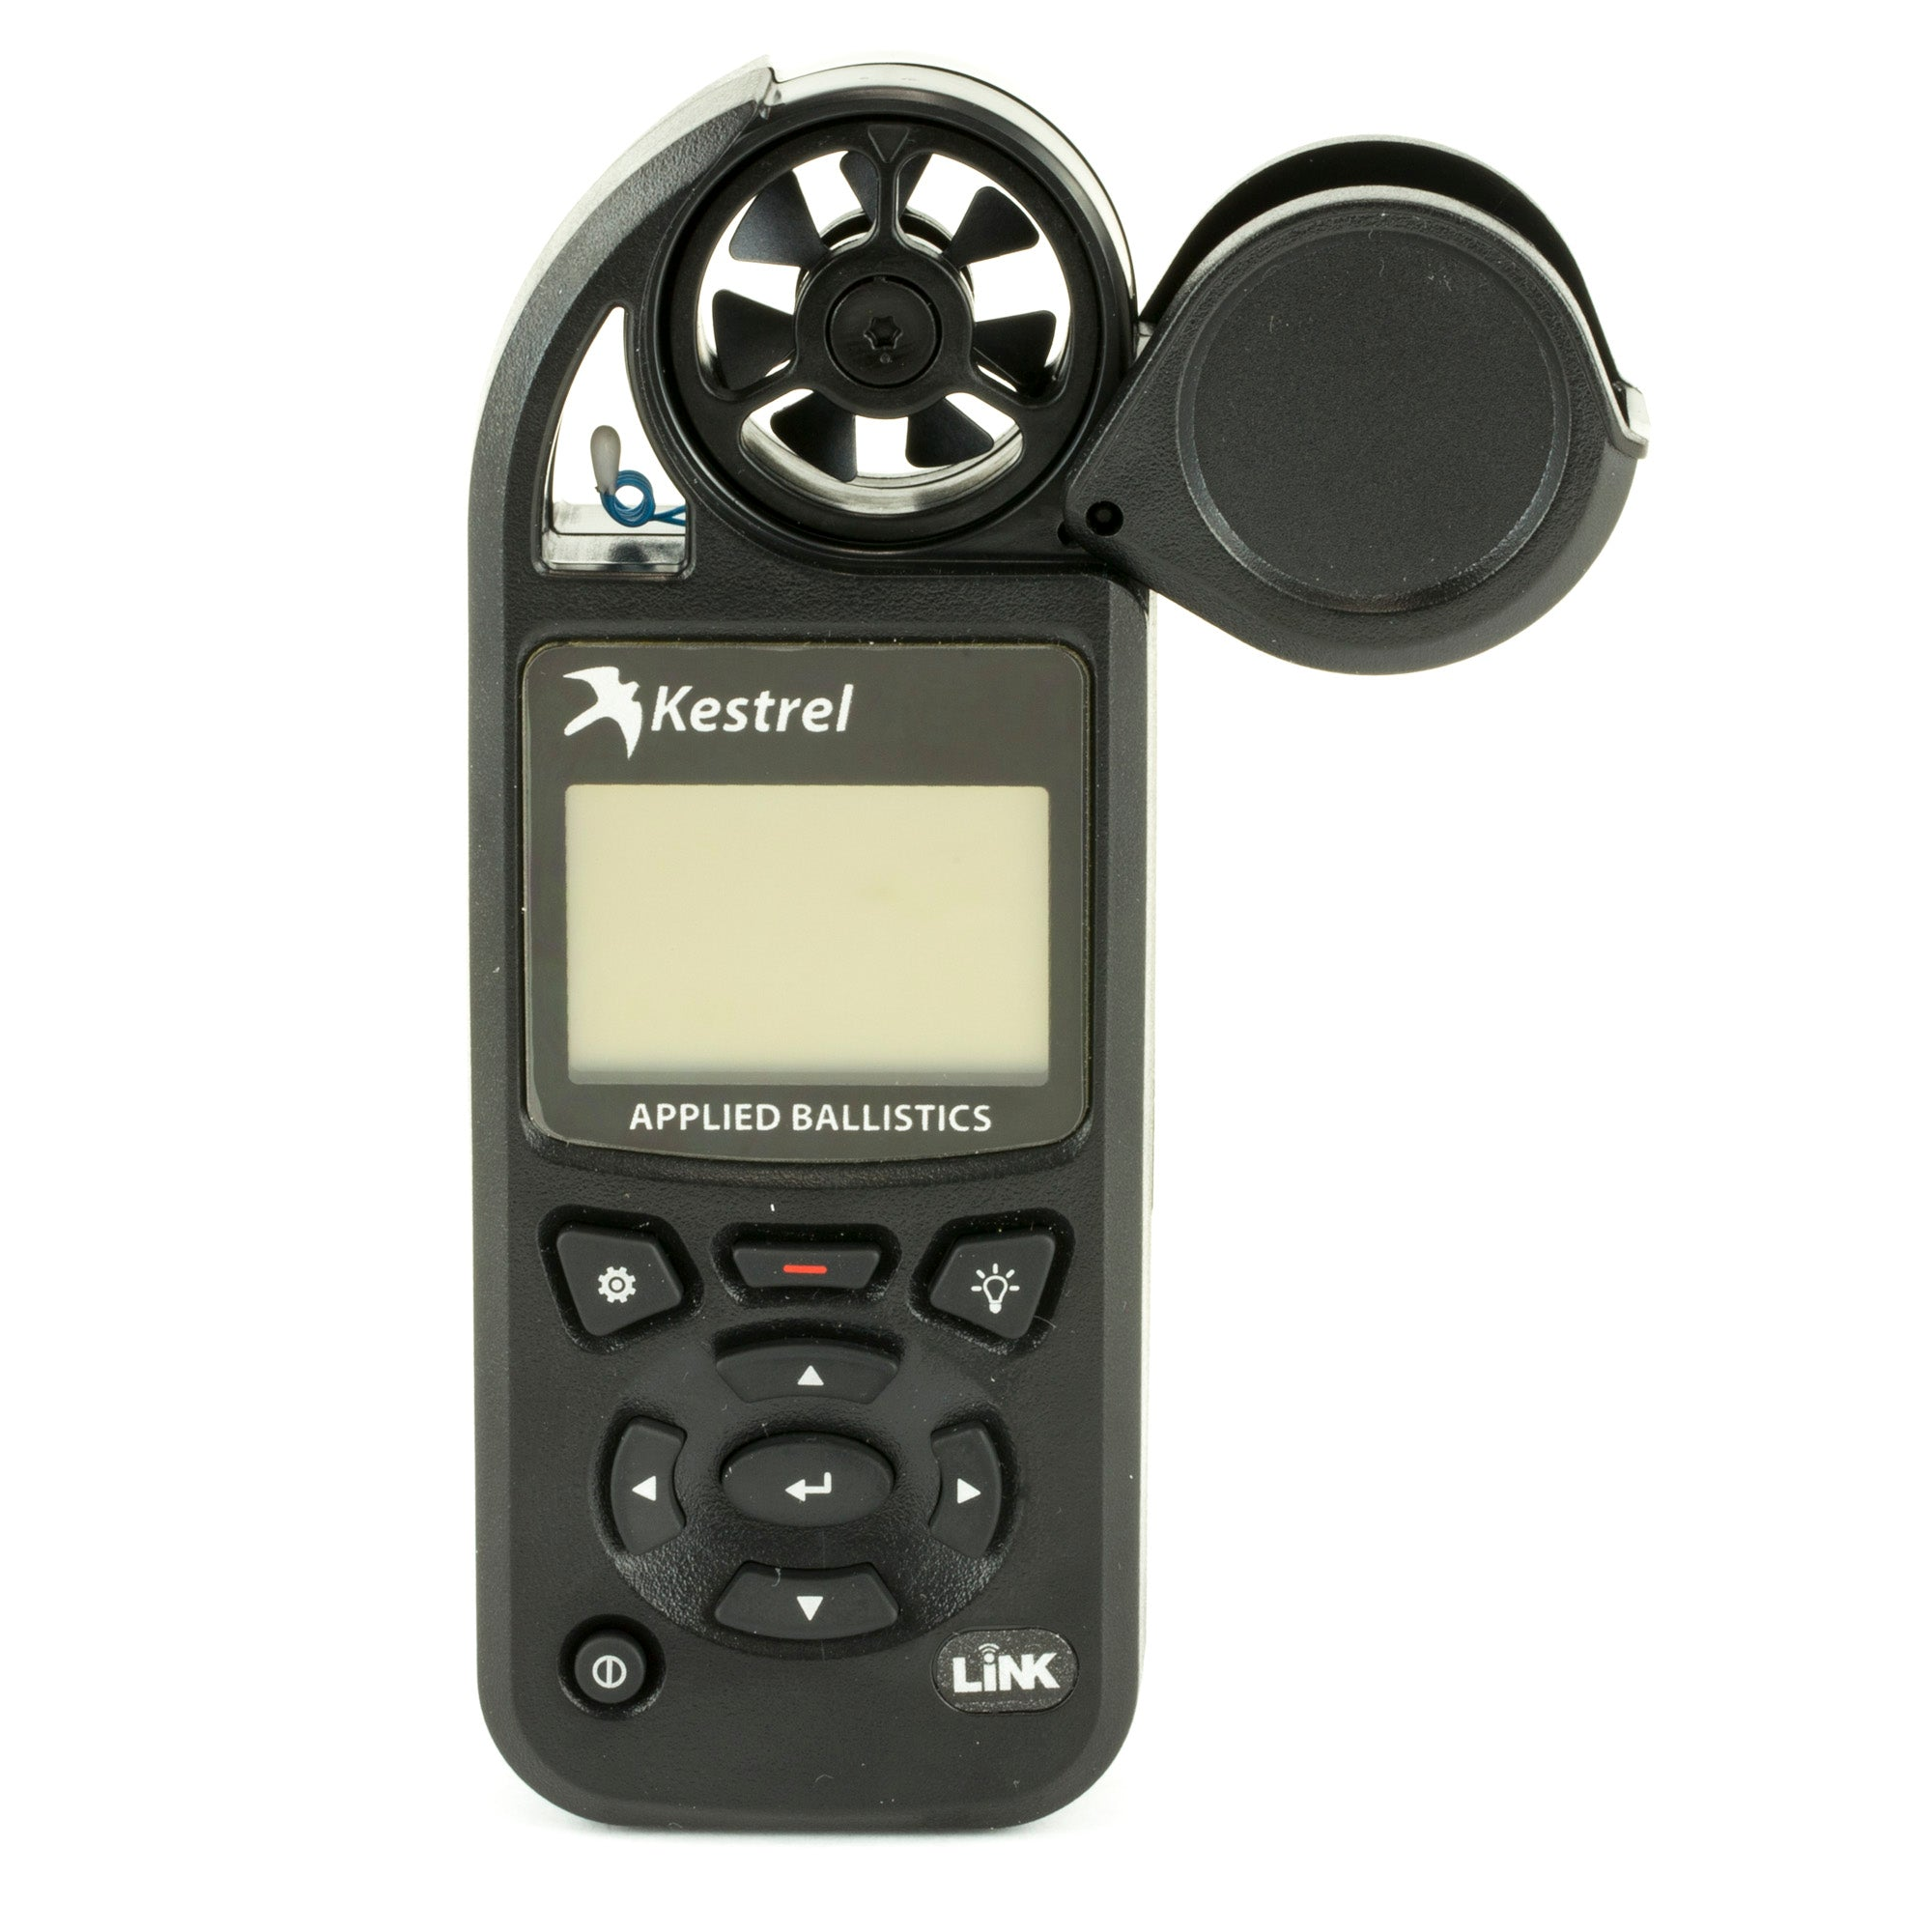 Kestrel 5700 Elite Hand Held Weather Meter with Applied Ballistics with LINK - A&J Sporting